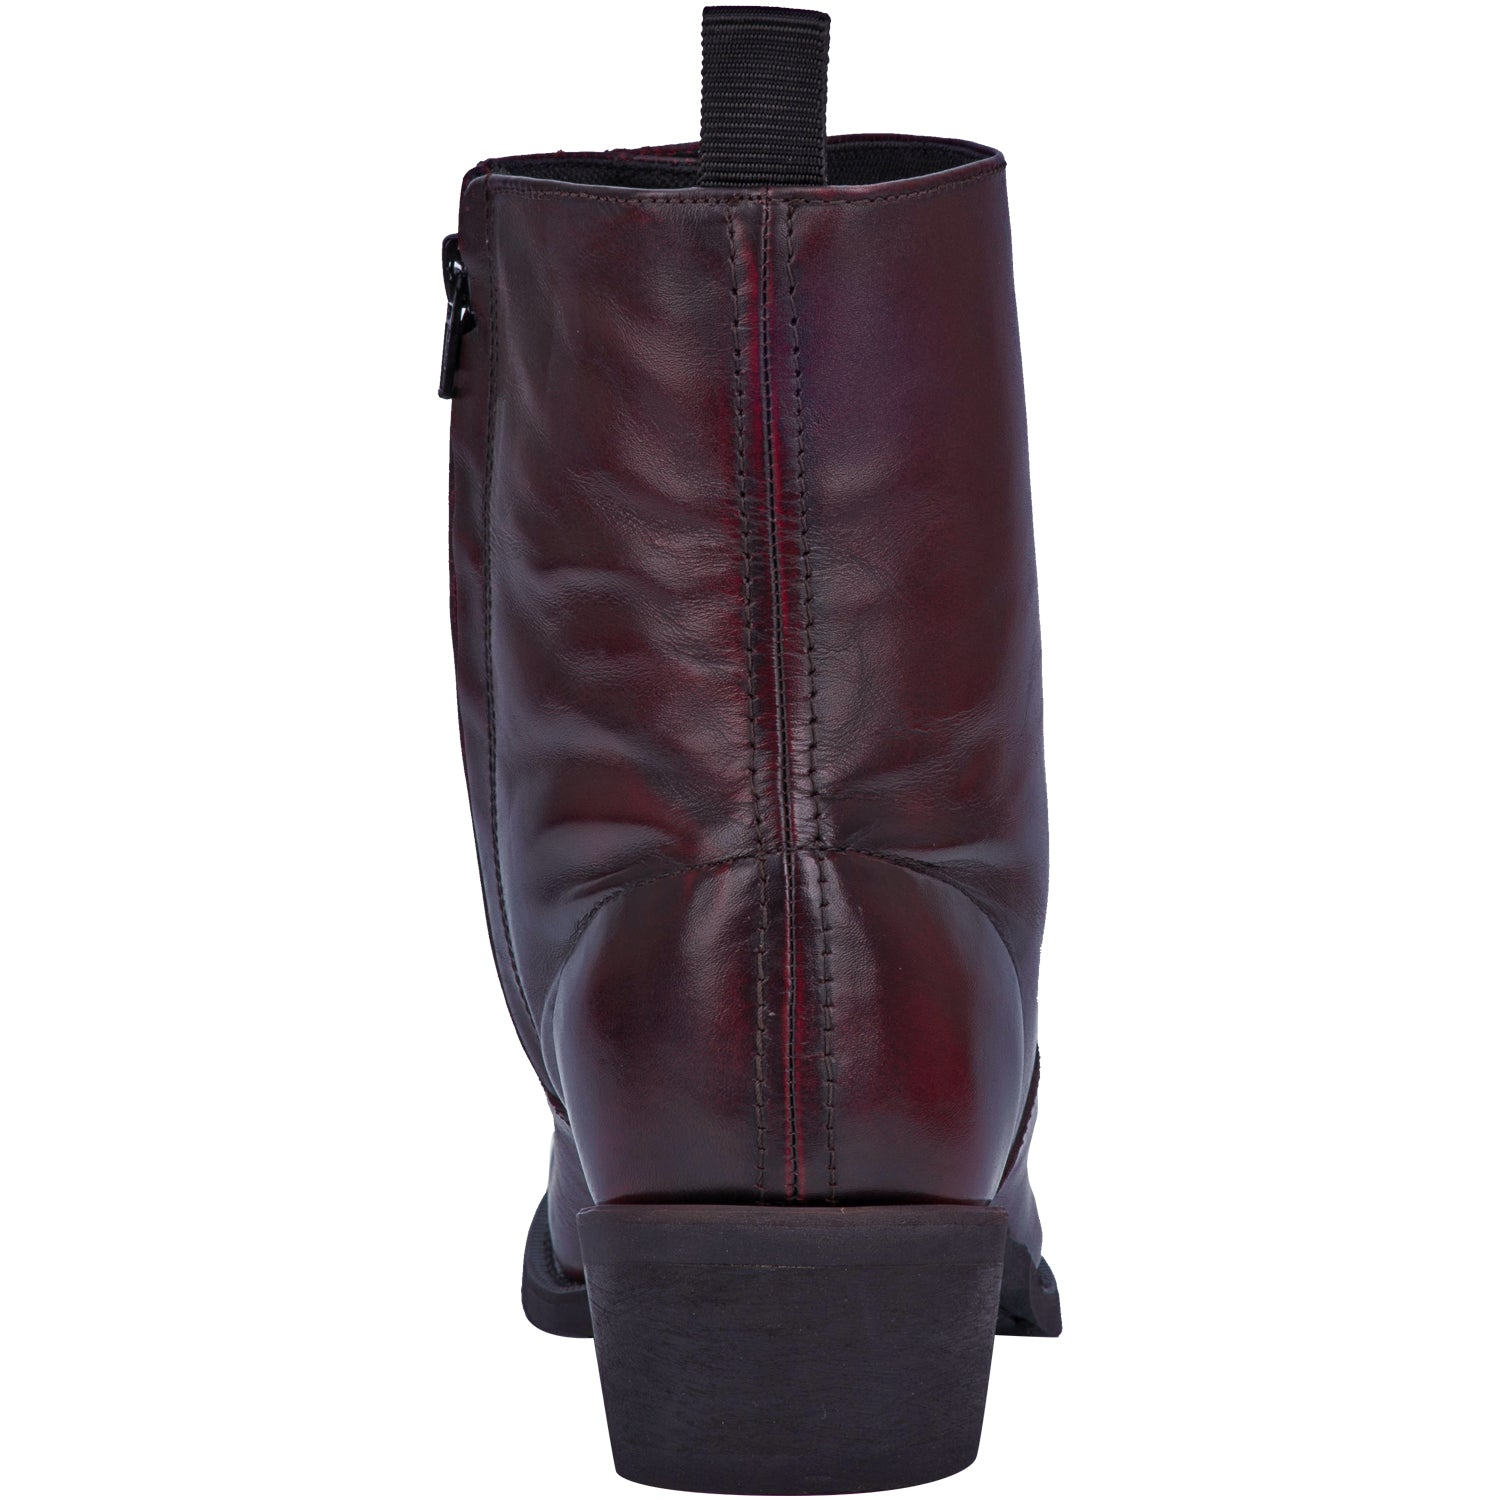 FLETCHER LEATHER BOOT 5789493231658